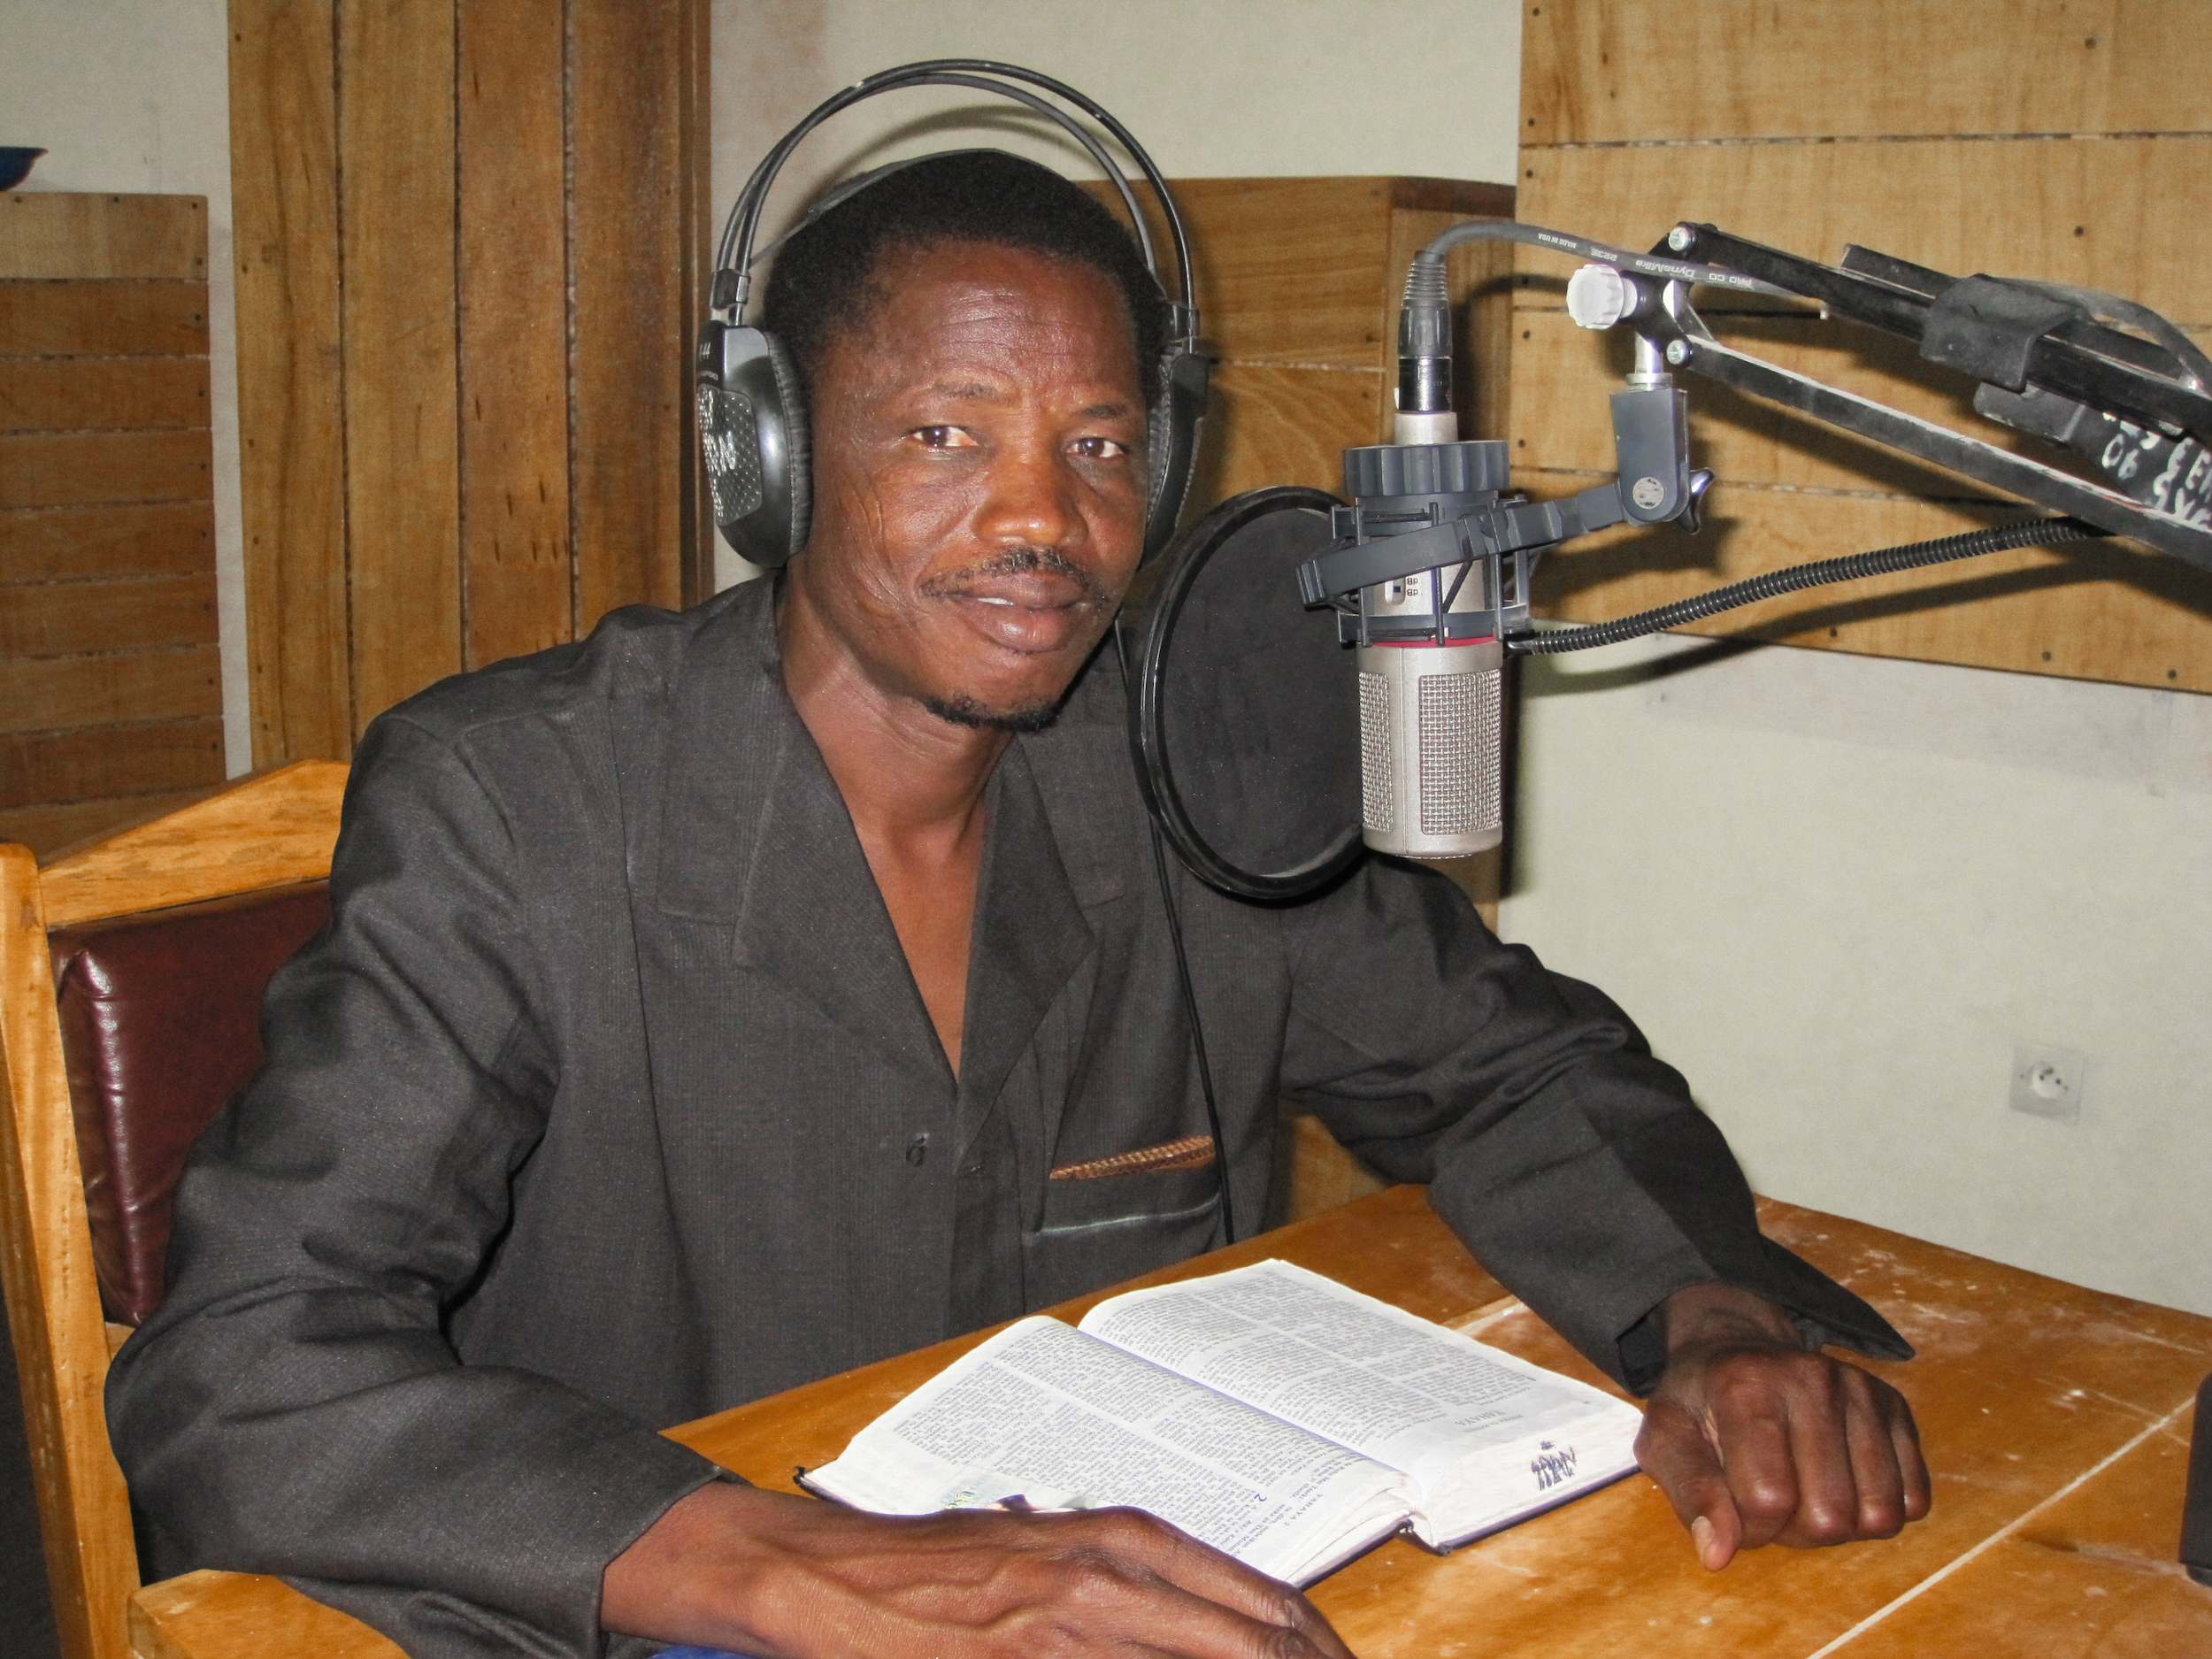 Niger man with headphones recording at microphone